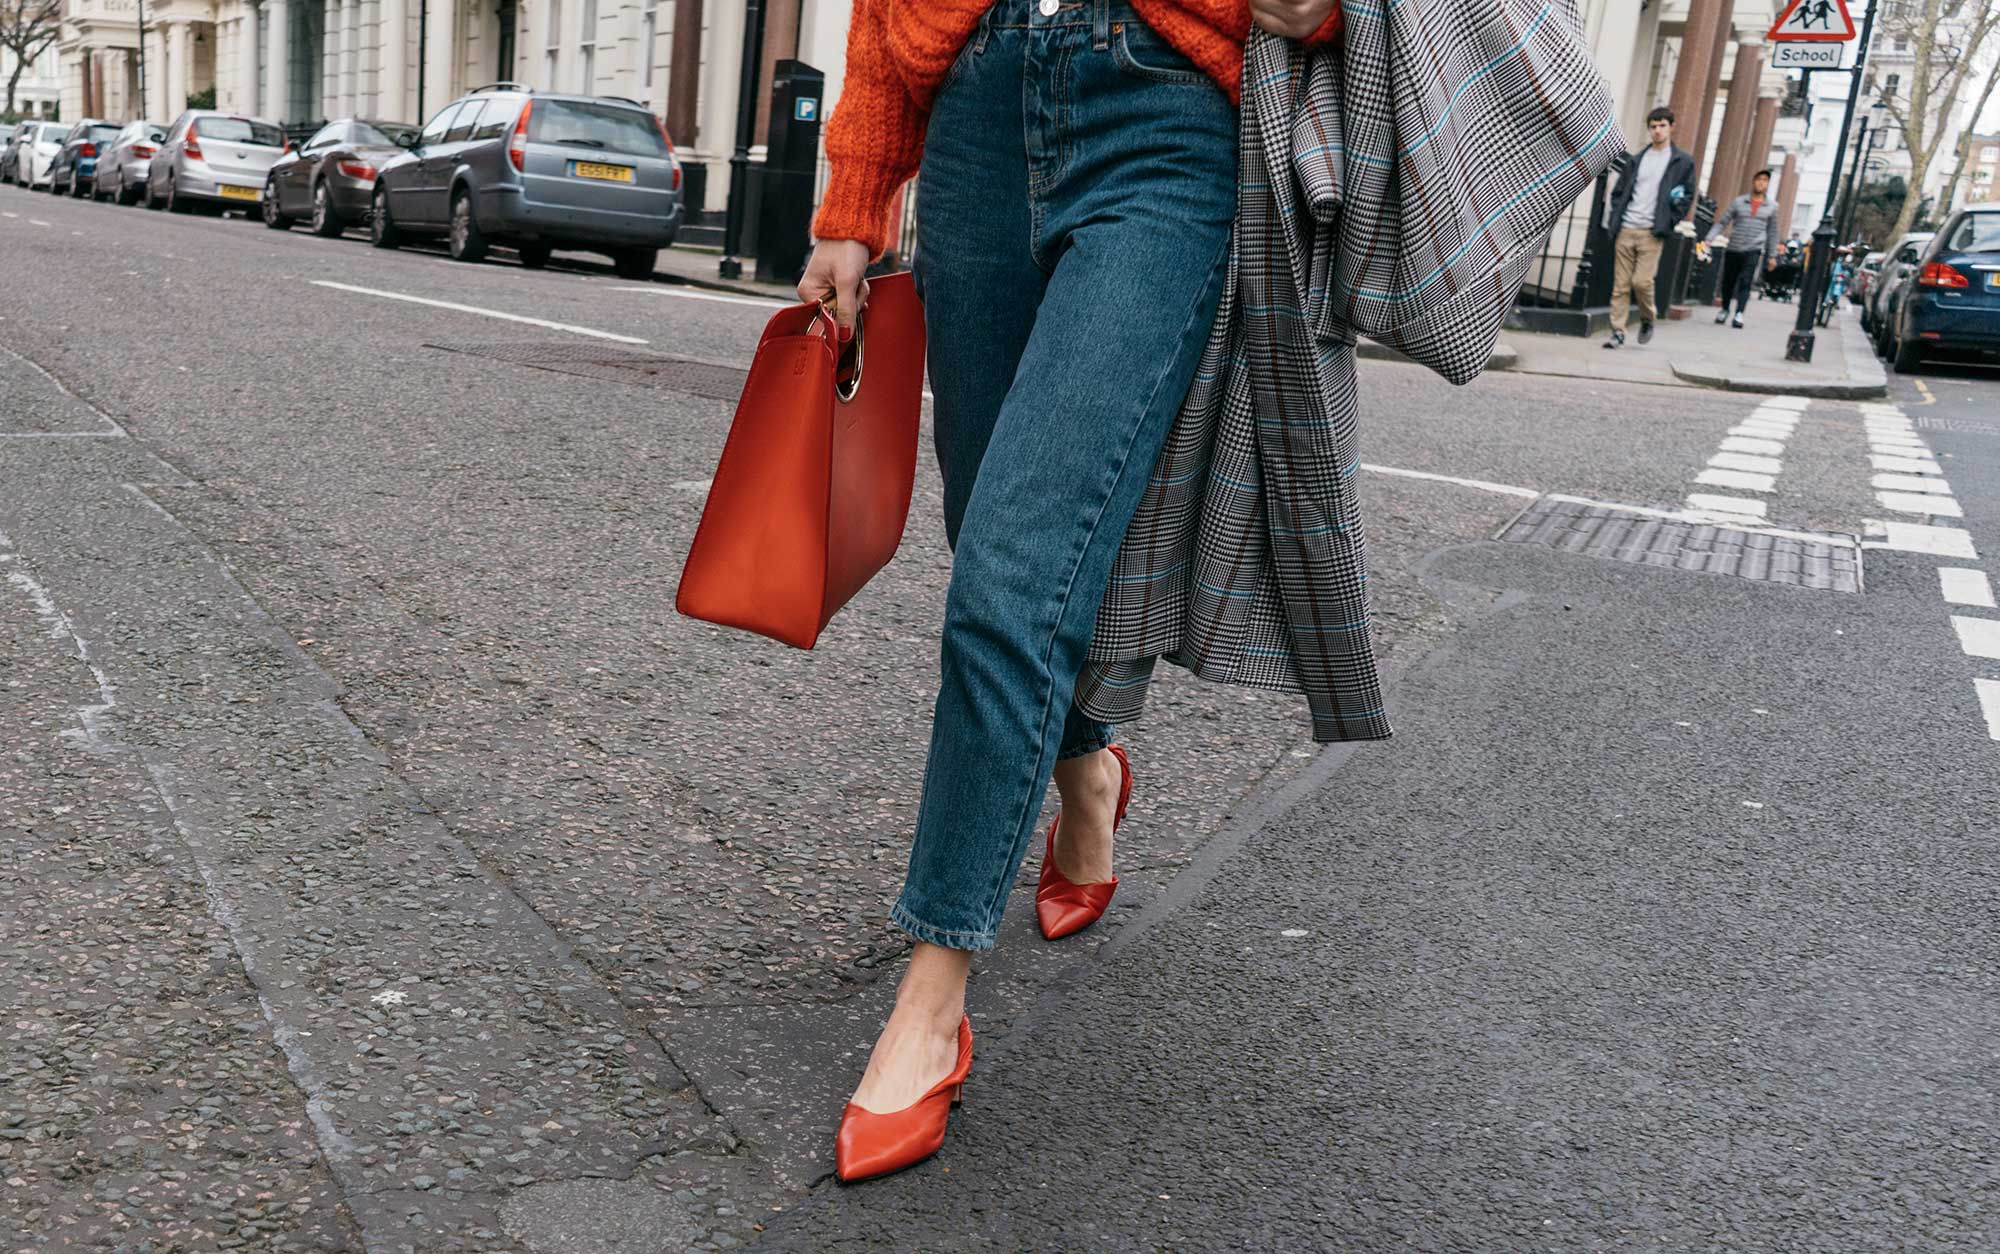 Lightweight-Check-Coat,-Salvatore-Ferragamo-Red-Leather-Tote,--Mom-jeans,-London-Fall-Outfit-Red-Accessories-17.jpg